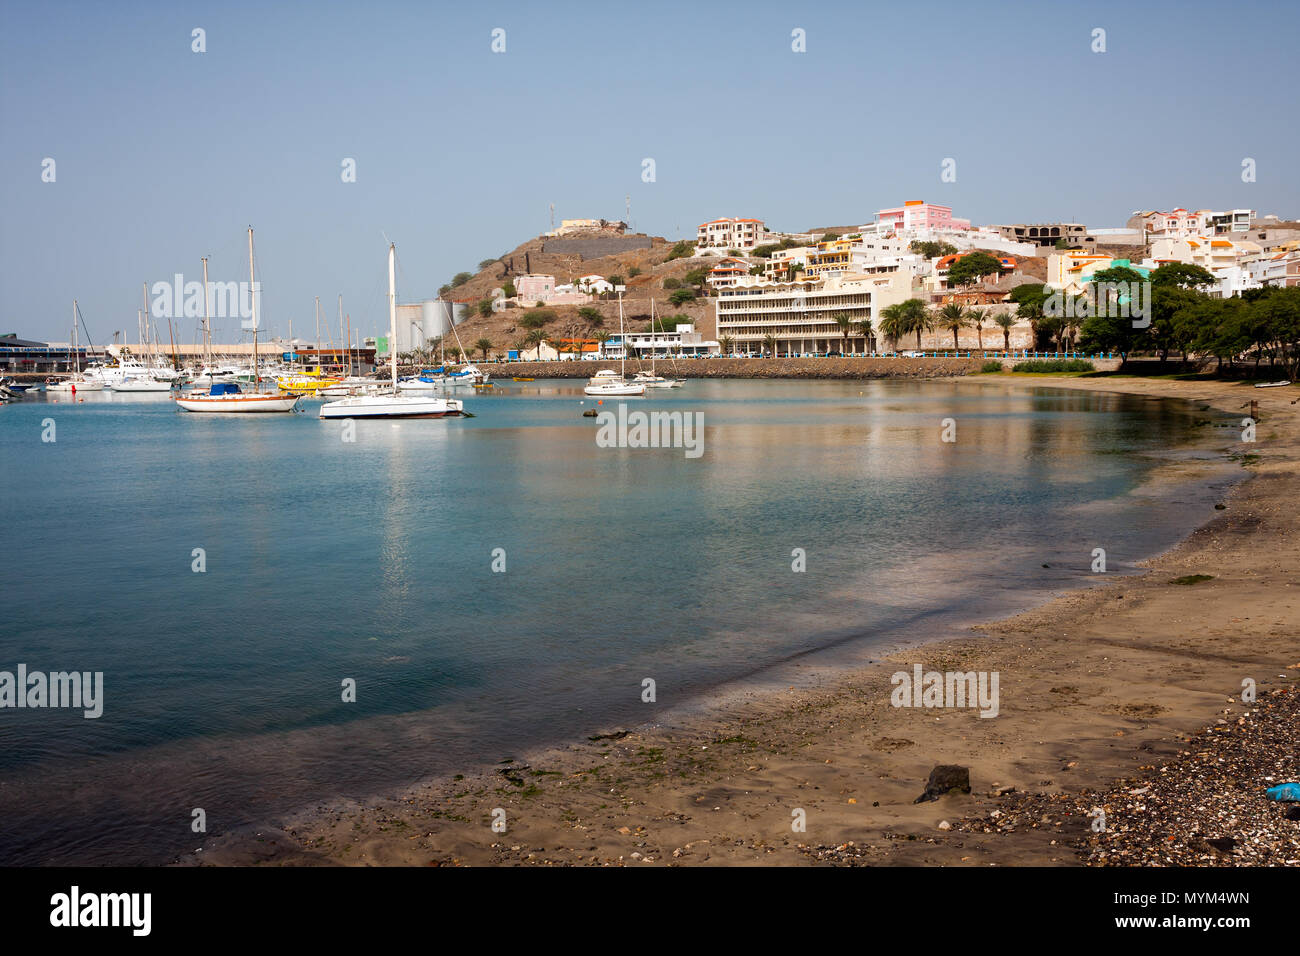 MINDELO, CAPE VERDE - DECEMBER 07, 2015: Sailboats in Marina of Sao Vicente island. Visible Fortim do Rei and maritime port agency AMP Stock Photo